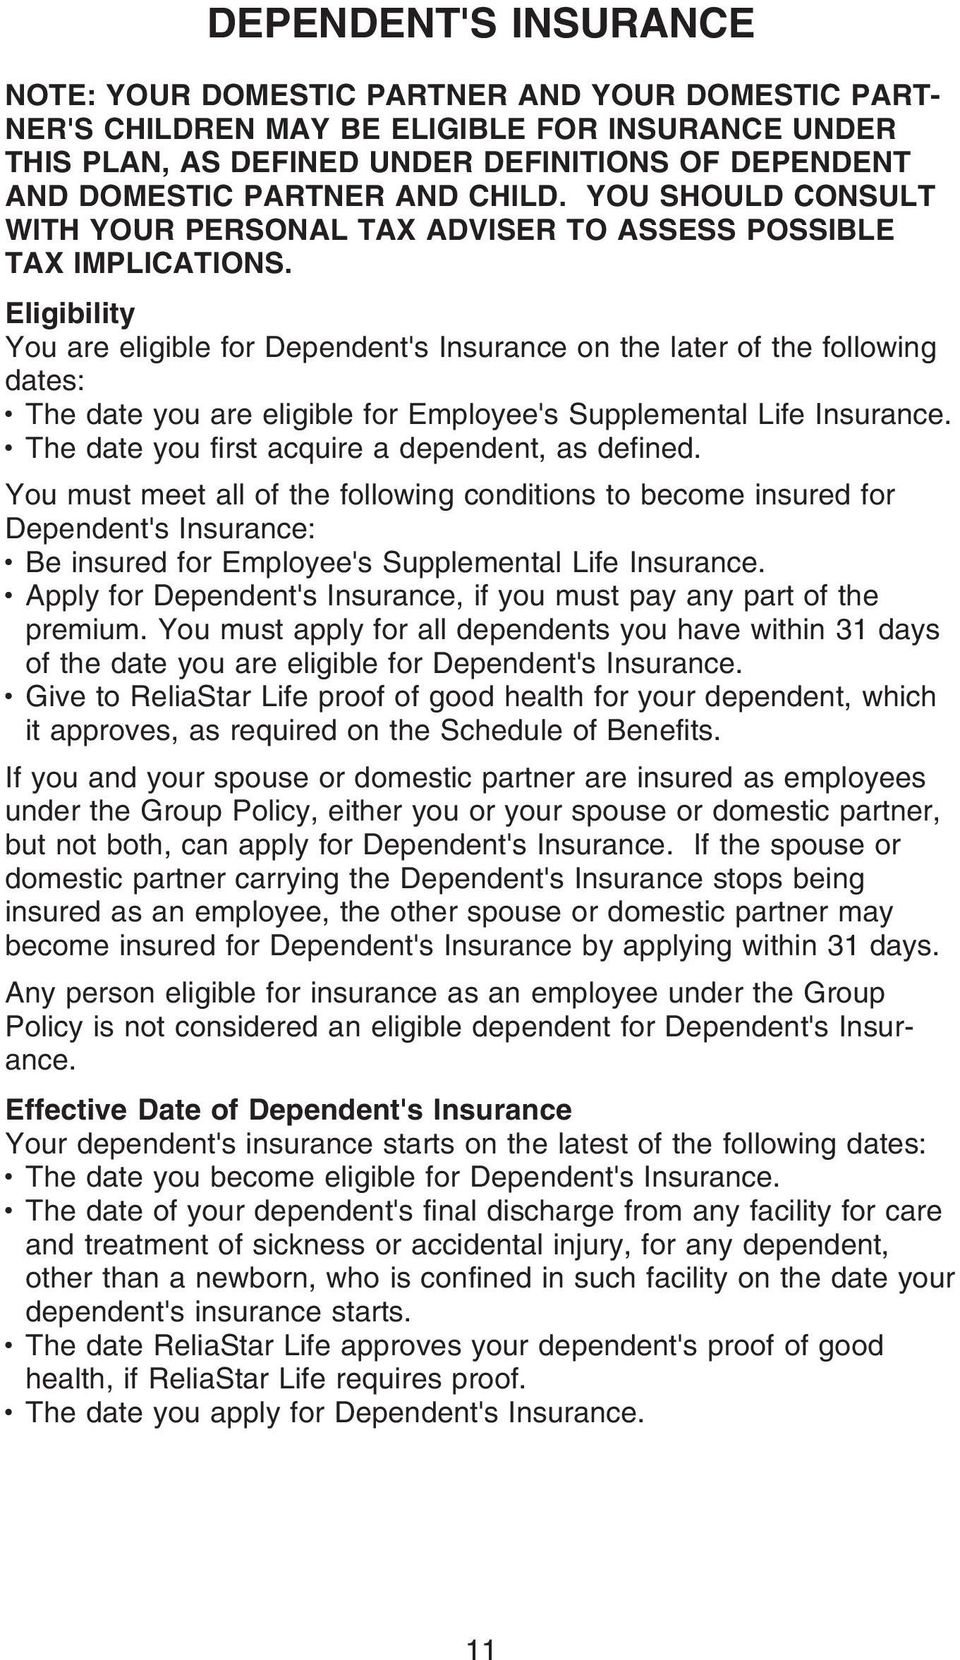 Eligibility You are eligible for Dependent's Insurance on the later of the following dates: The date you are eligible for Employee's Supplemental Life Insurance.